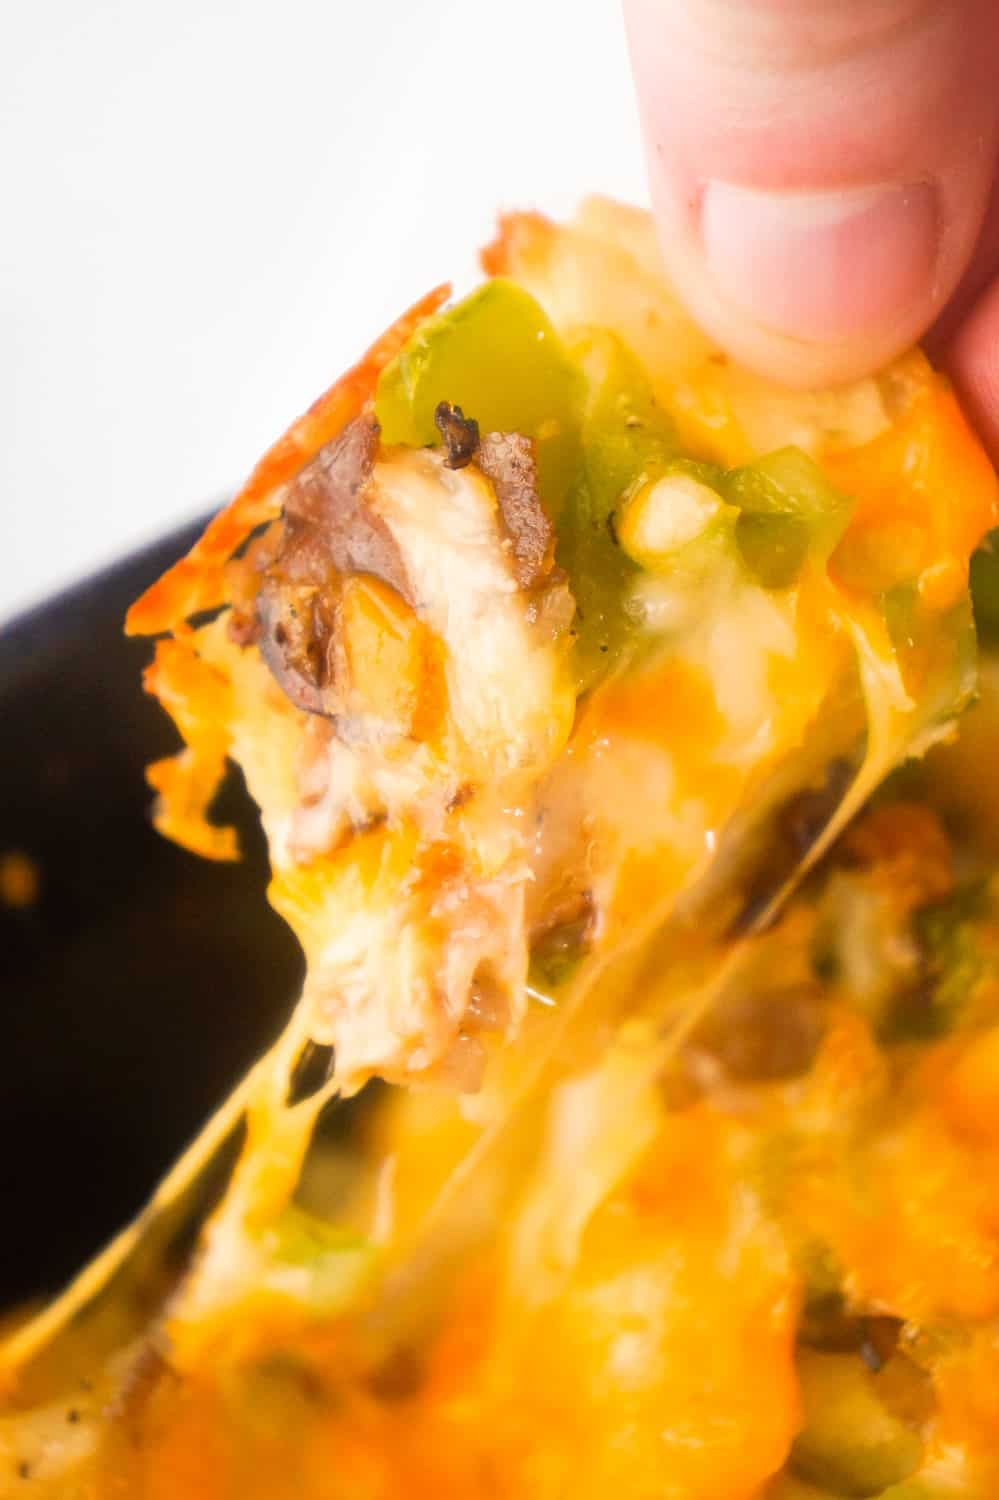 Philly Cheese Steak Pull Apart Bread is an easy party food perfect for game day. Bite sized pieces of bagel are loaded with roast beef, green peppers and cheddar cheese.